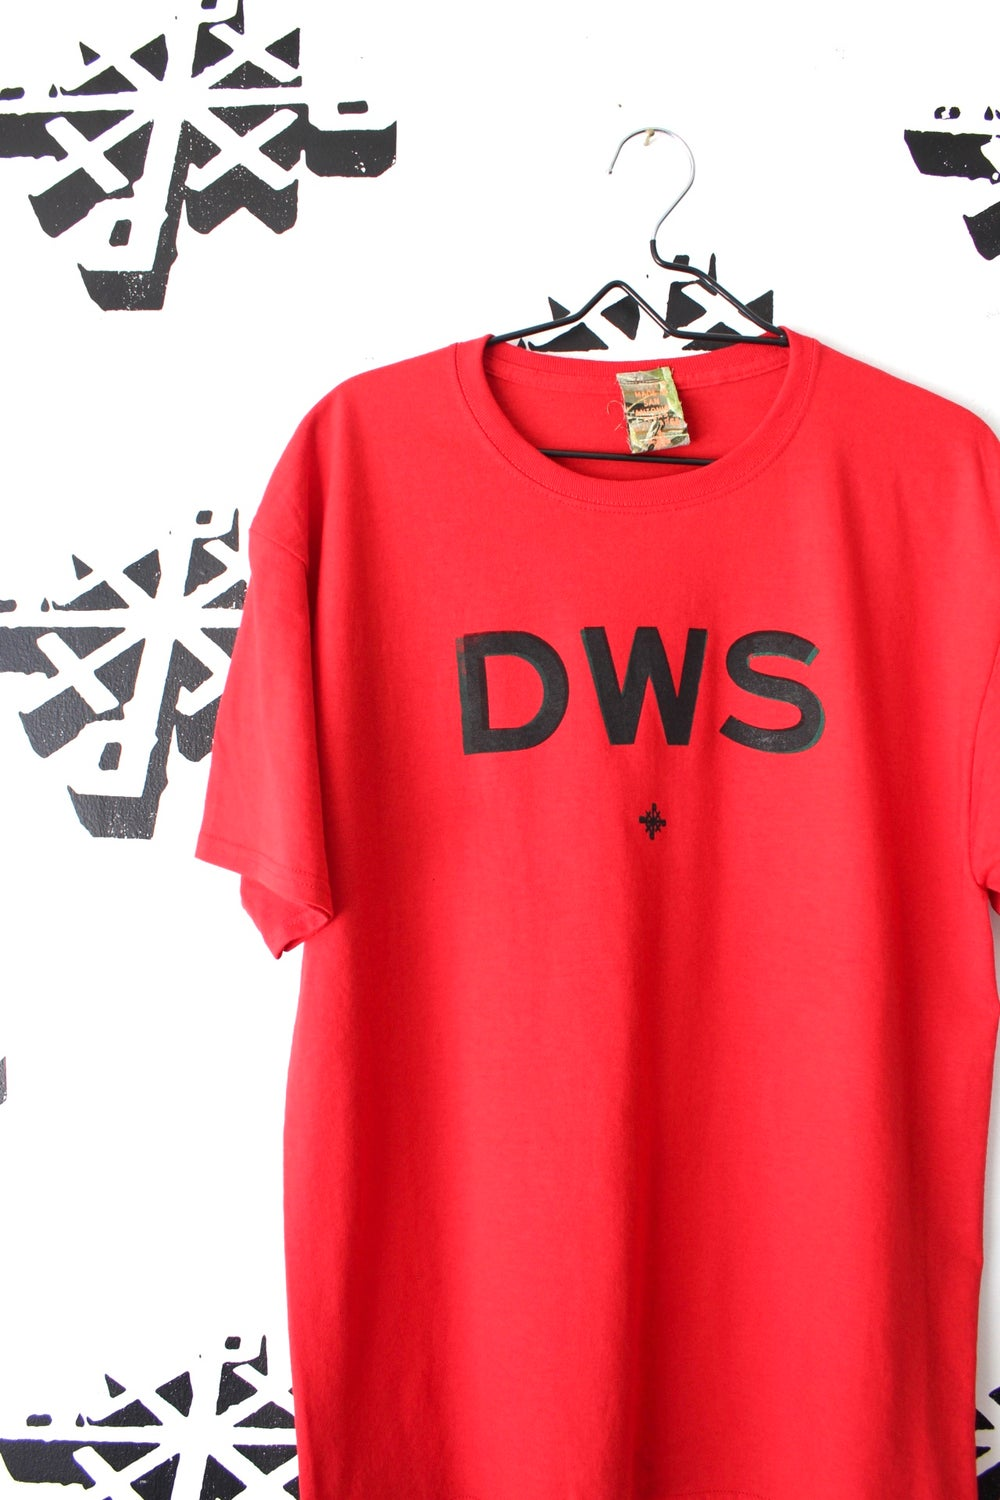 DWS tee in red